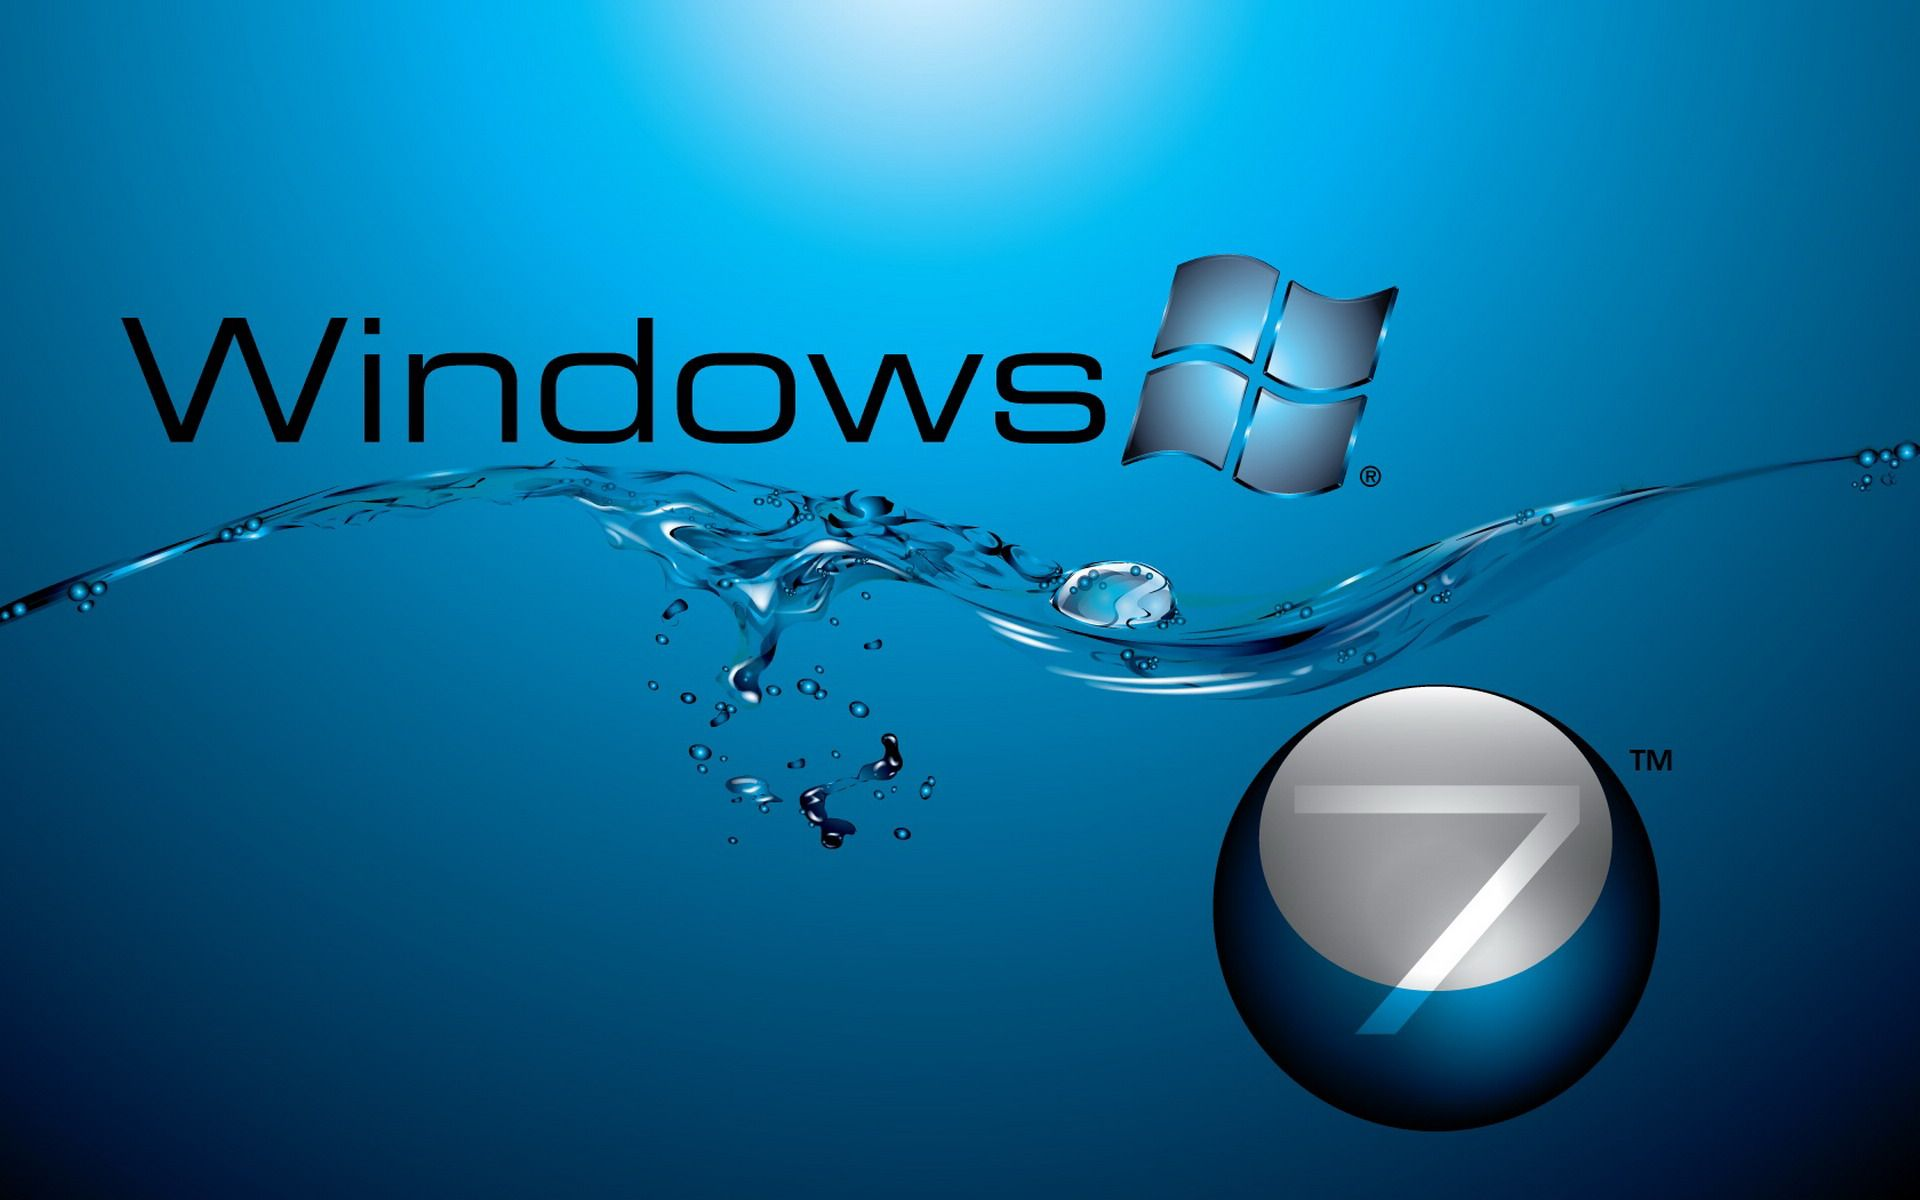 windows 10 home 64 bit iso getintopc